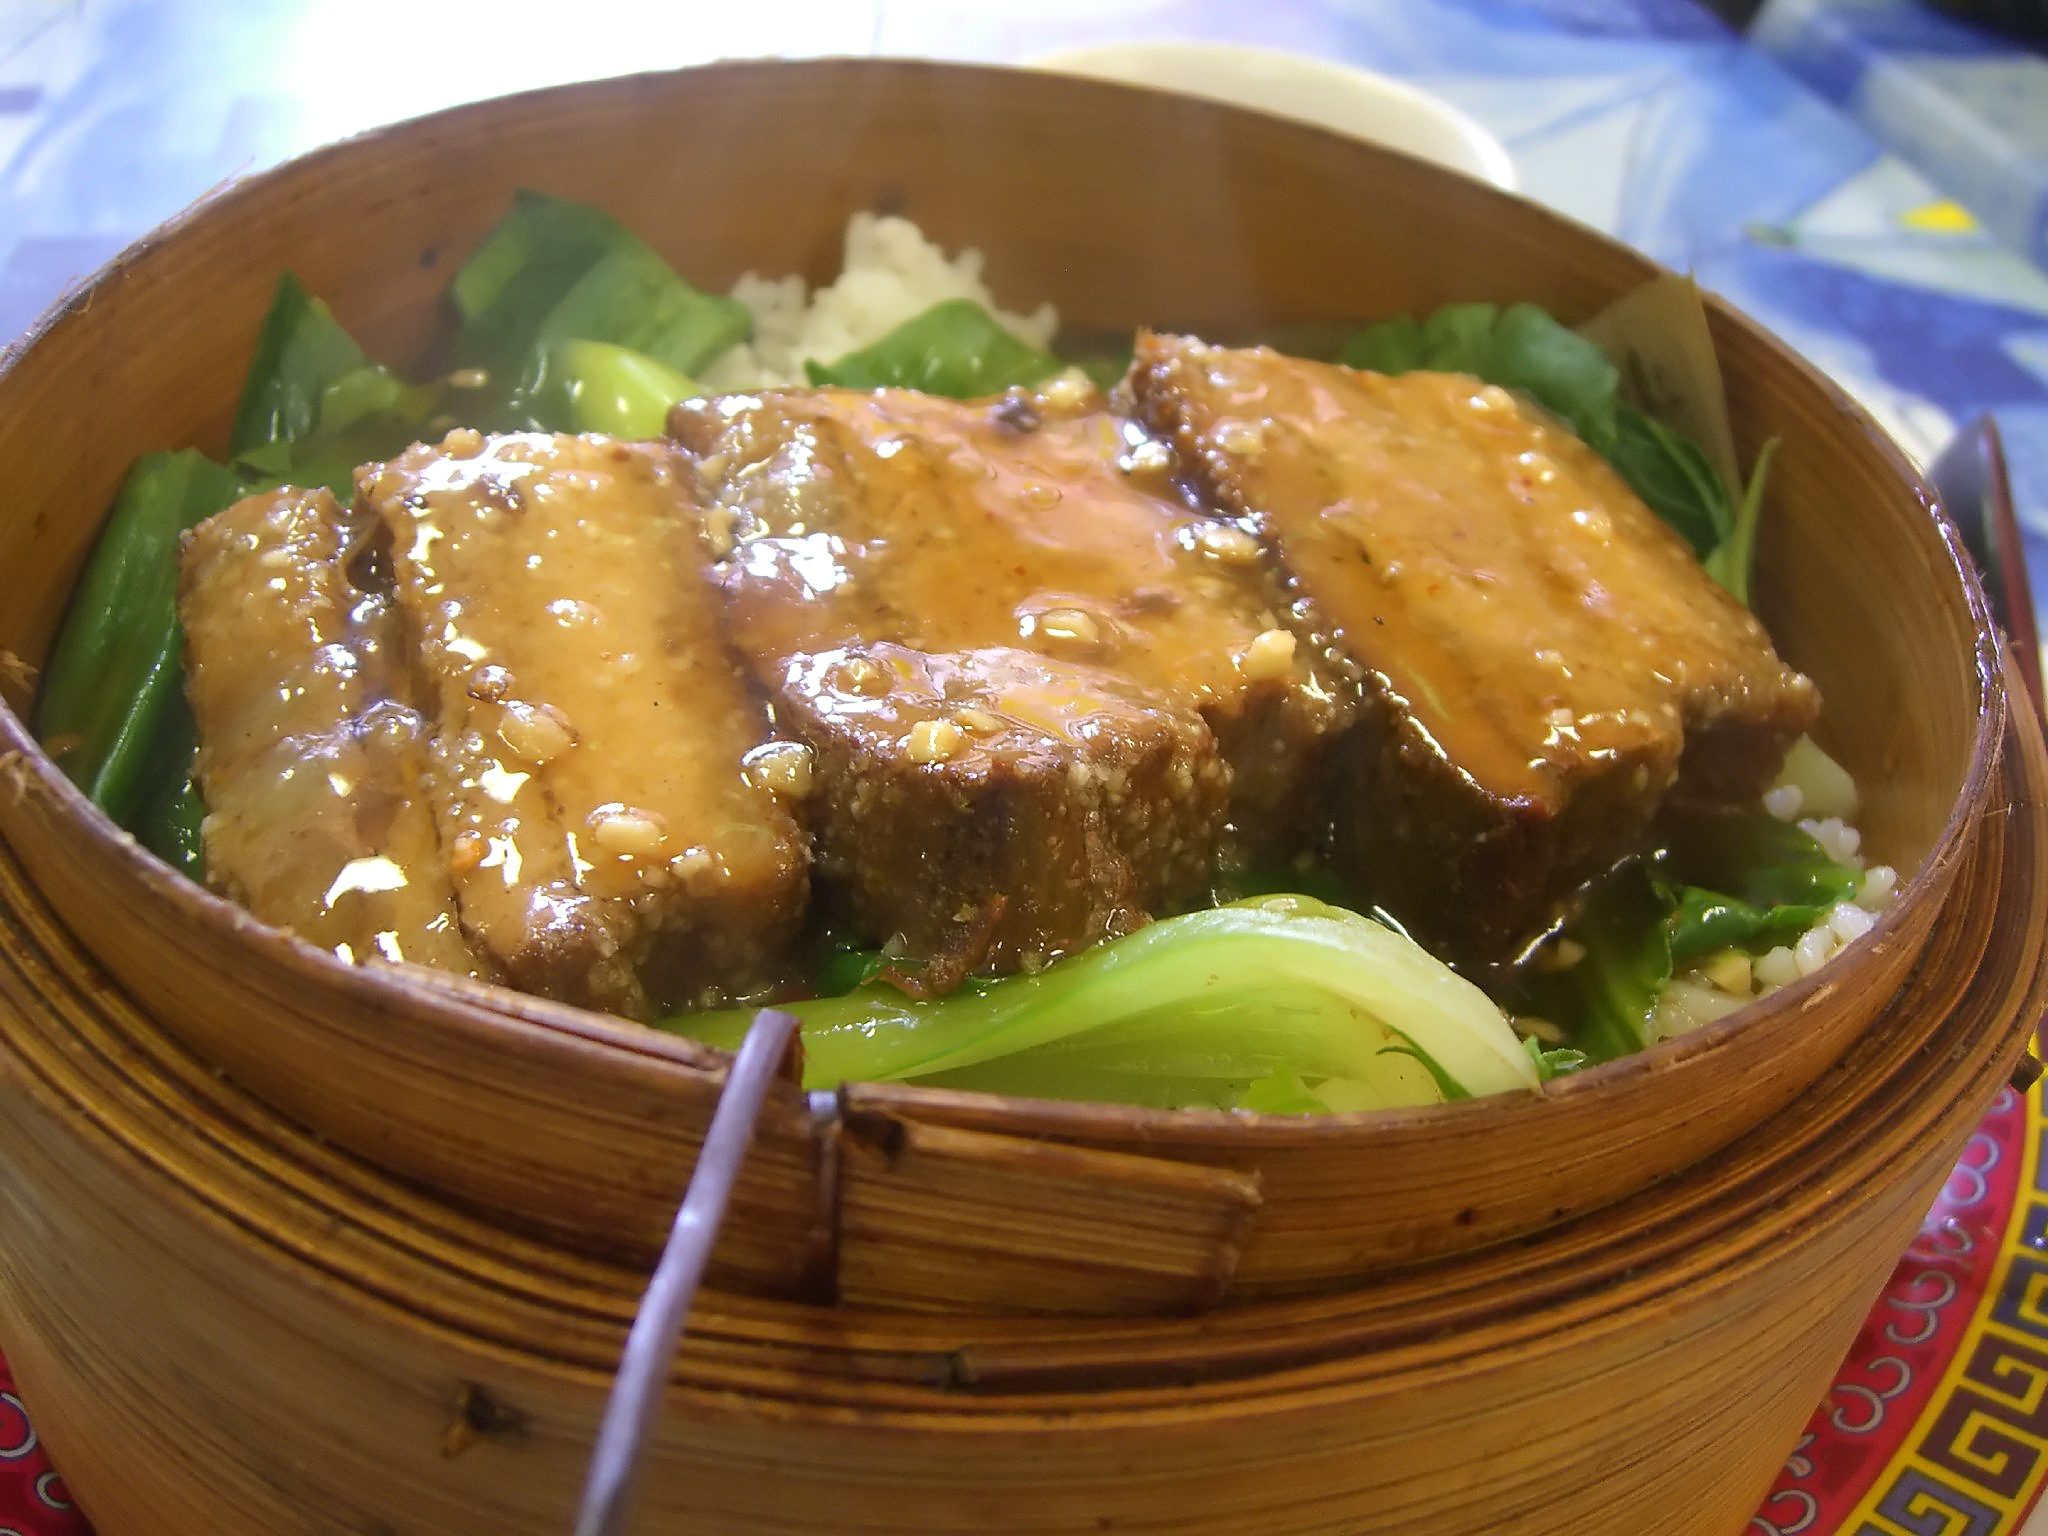 Bamboo_Steamer_with_Steamed_Pork_on_Rice